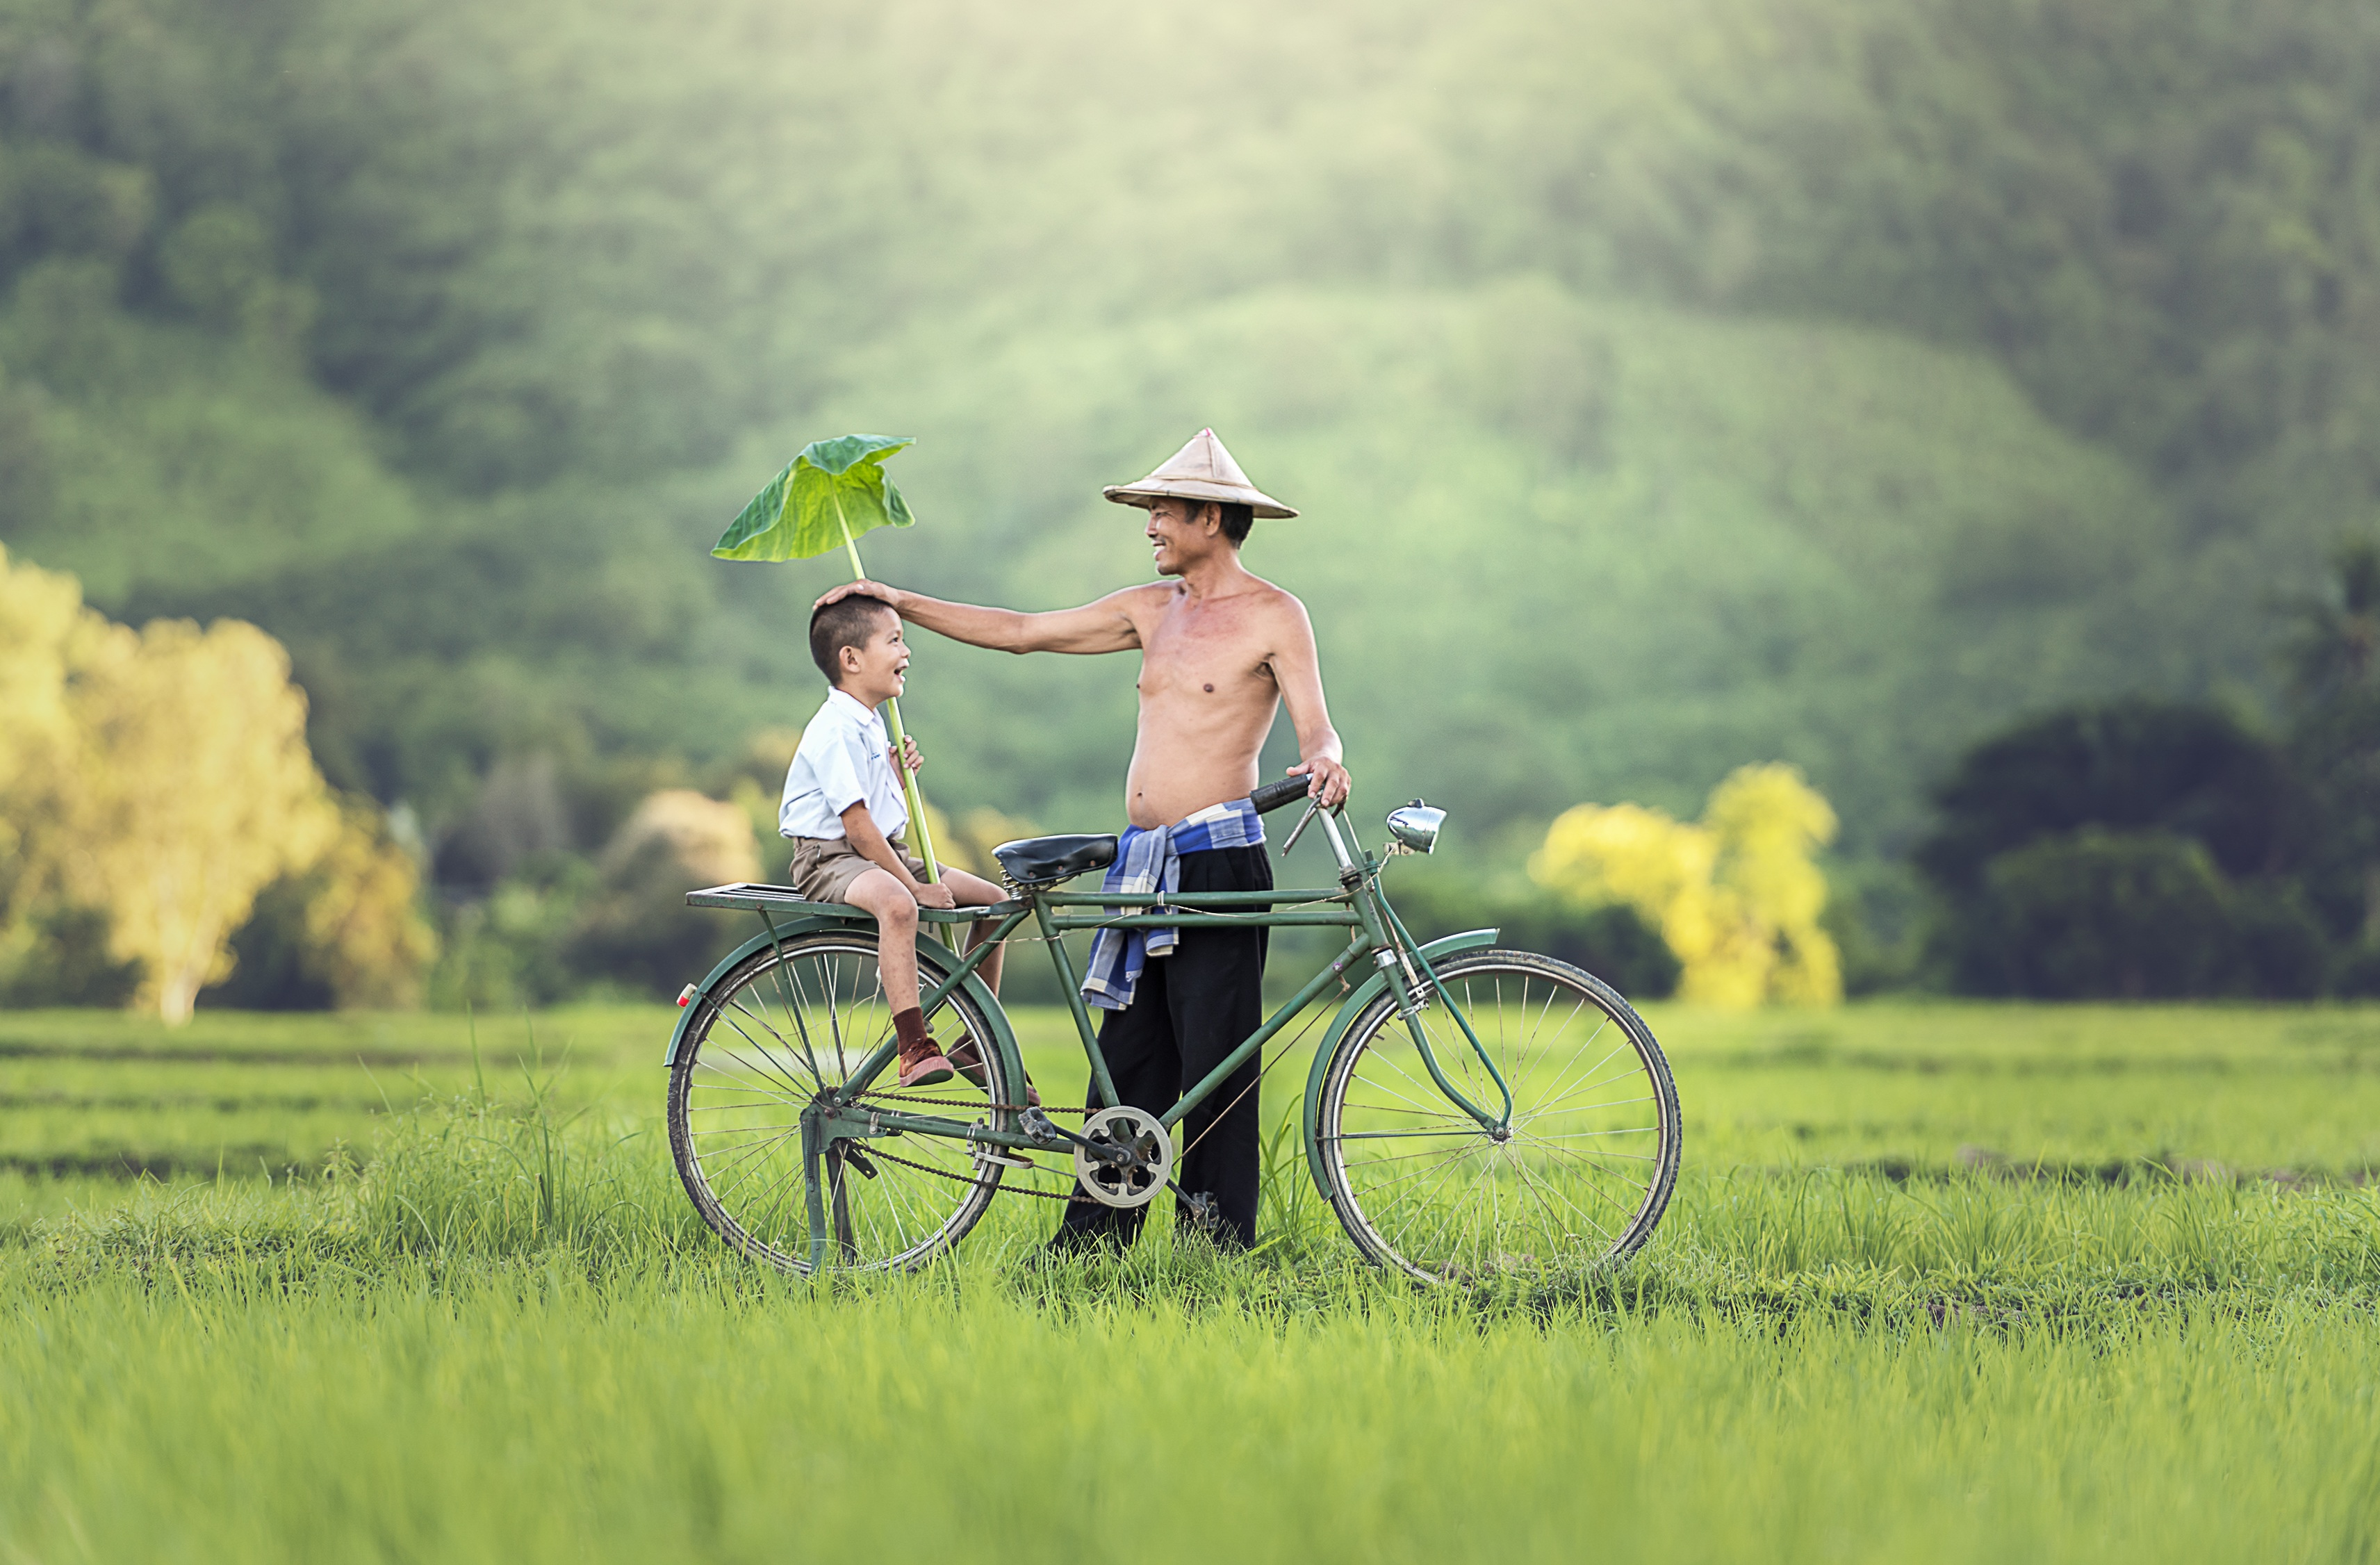 bicycle-1822528